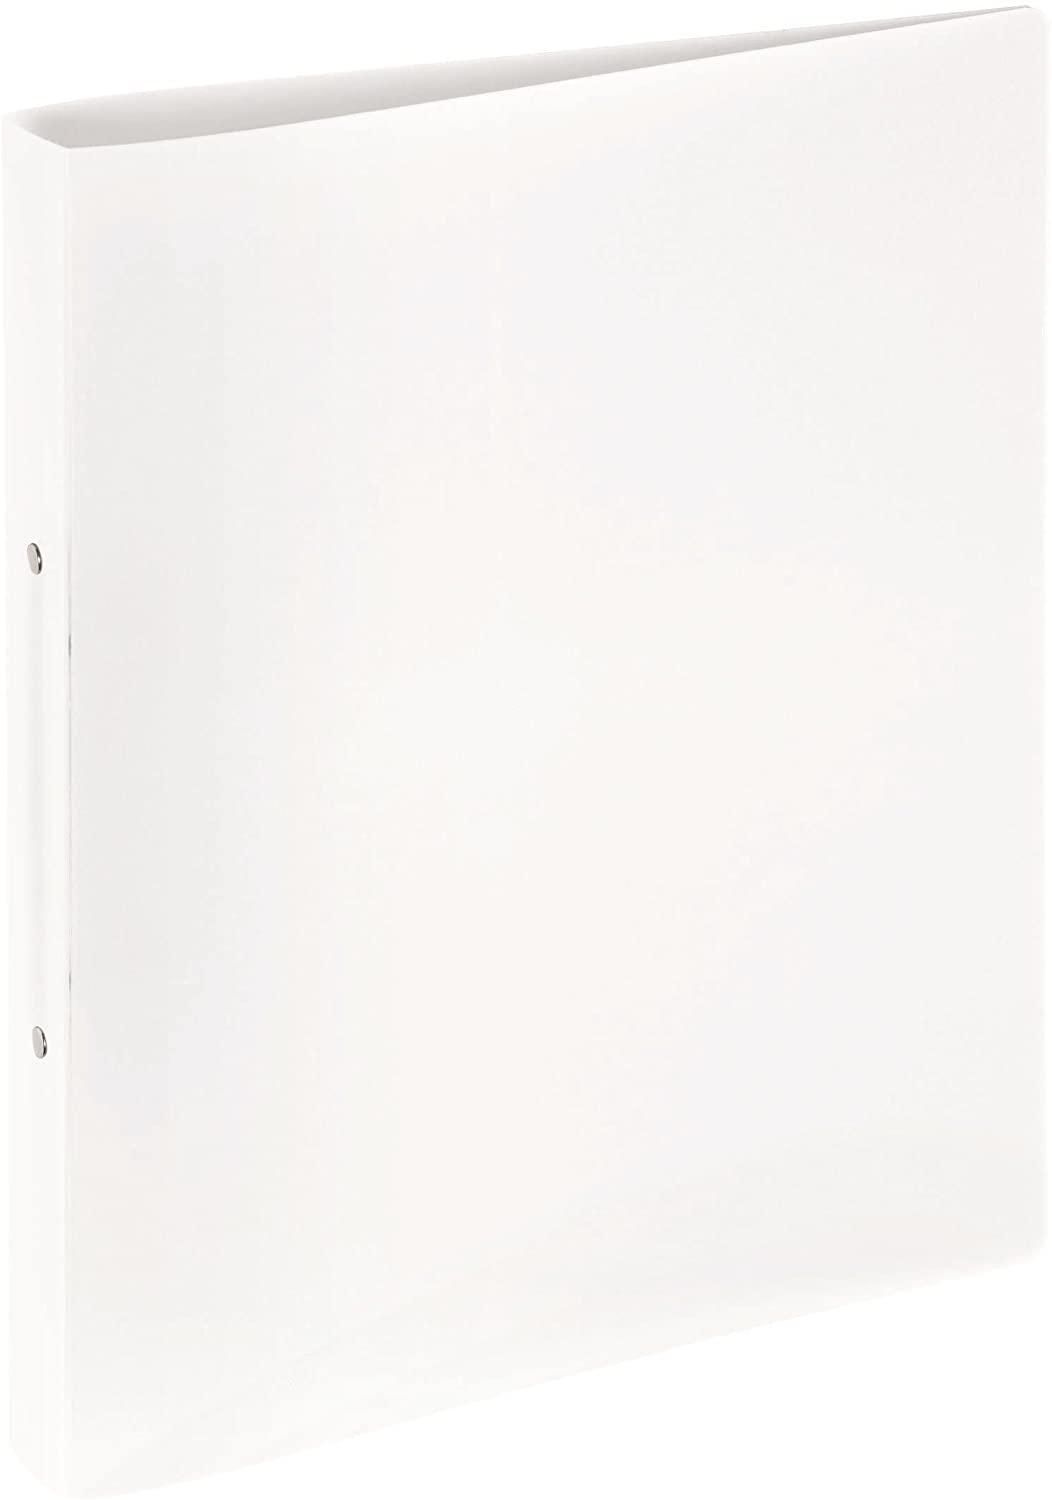 Pagna 20900 Ring Binder A4 Polypropylene 2 Ring Binder – 25 mm – White